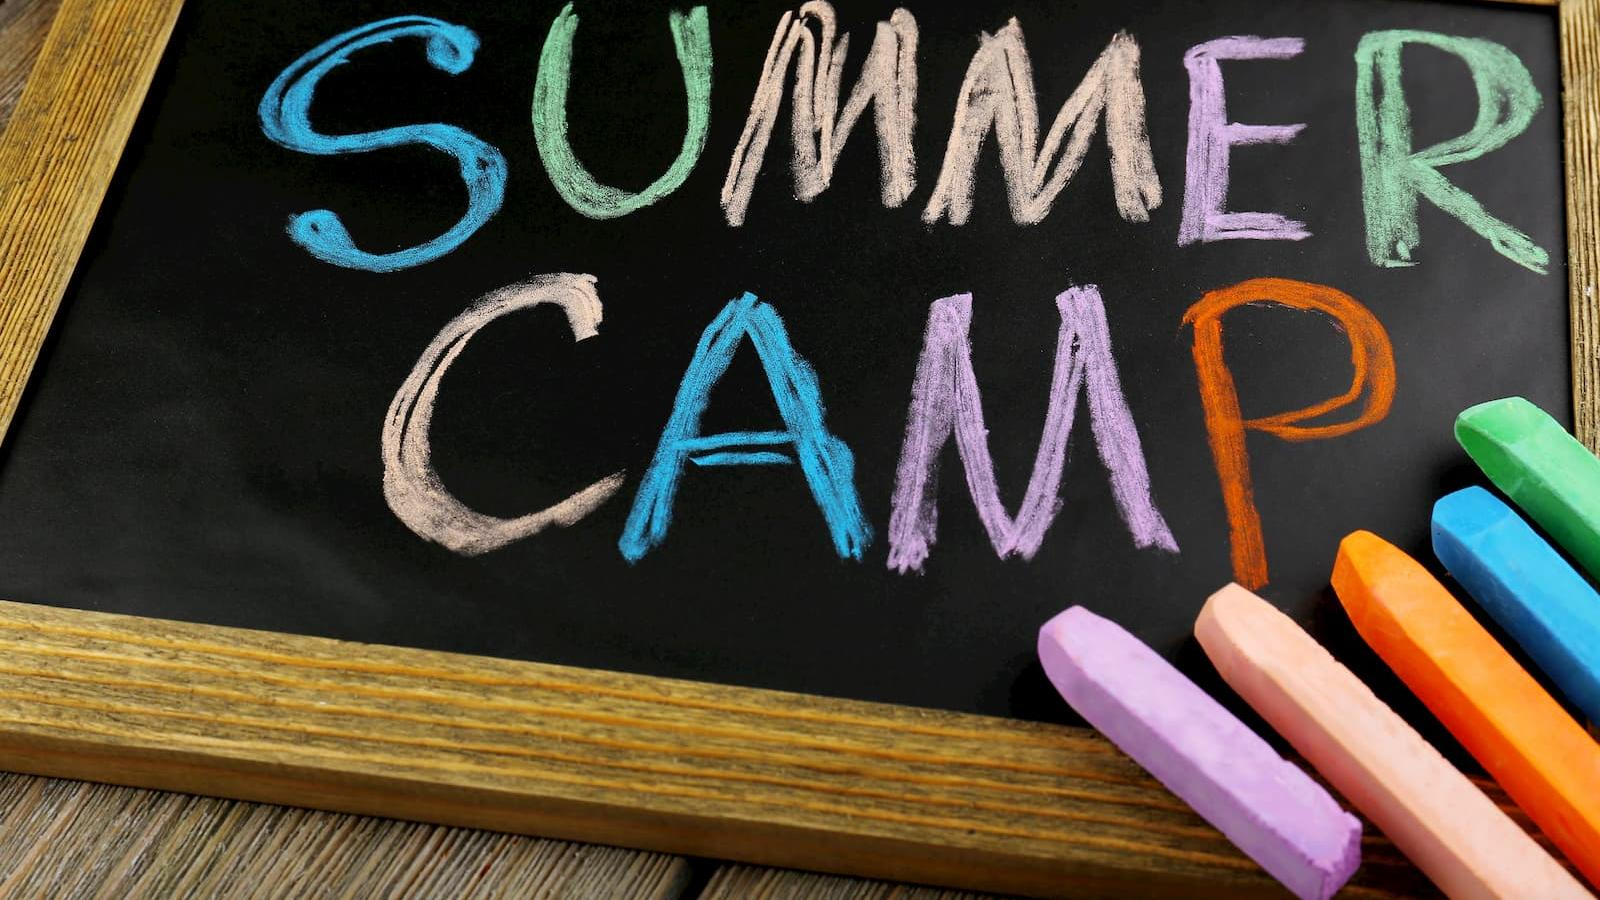 Some online summer camps and programs taking place in Qatar this season